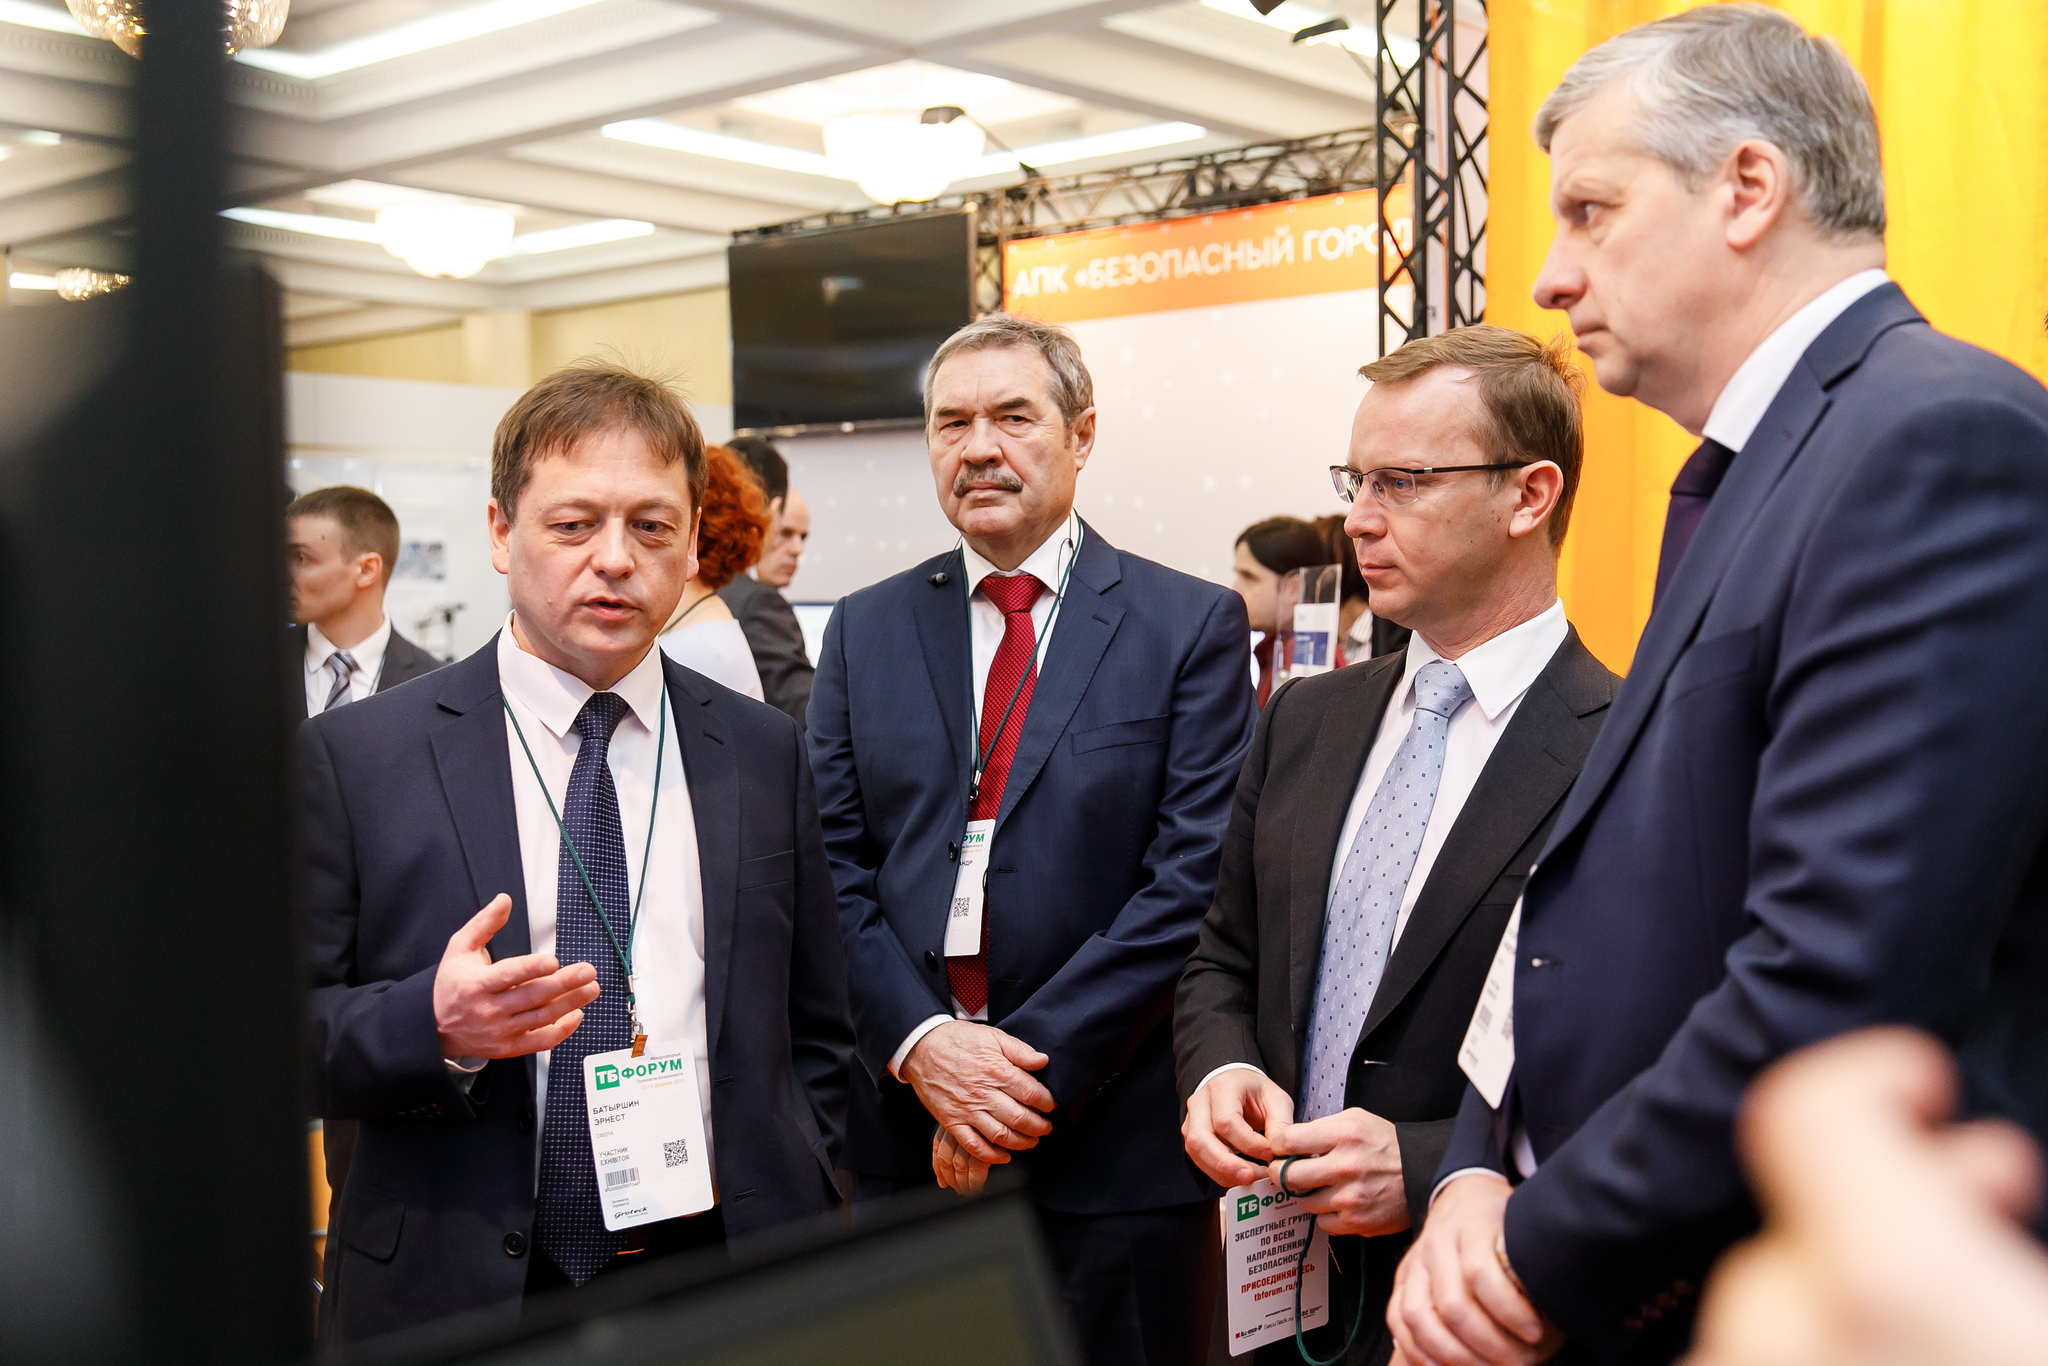 The XXV Anniversary International Forum of Security & Safety Technologies will bring together key participants of the security industry in Russia